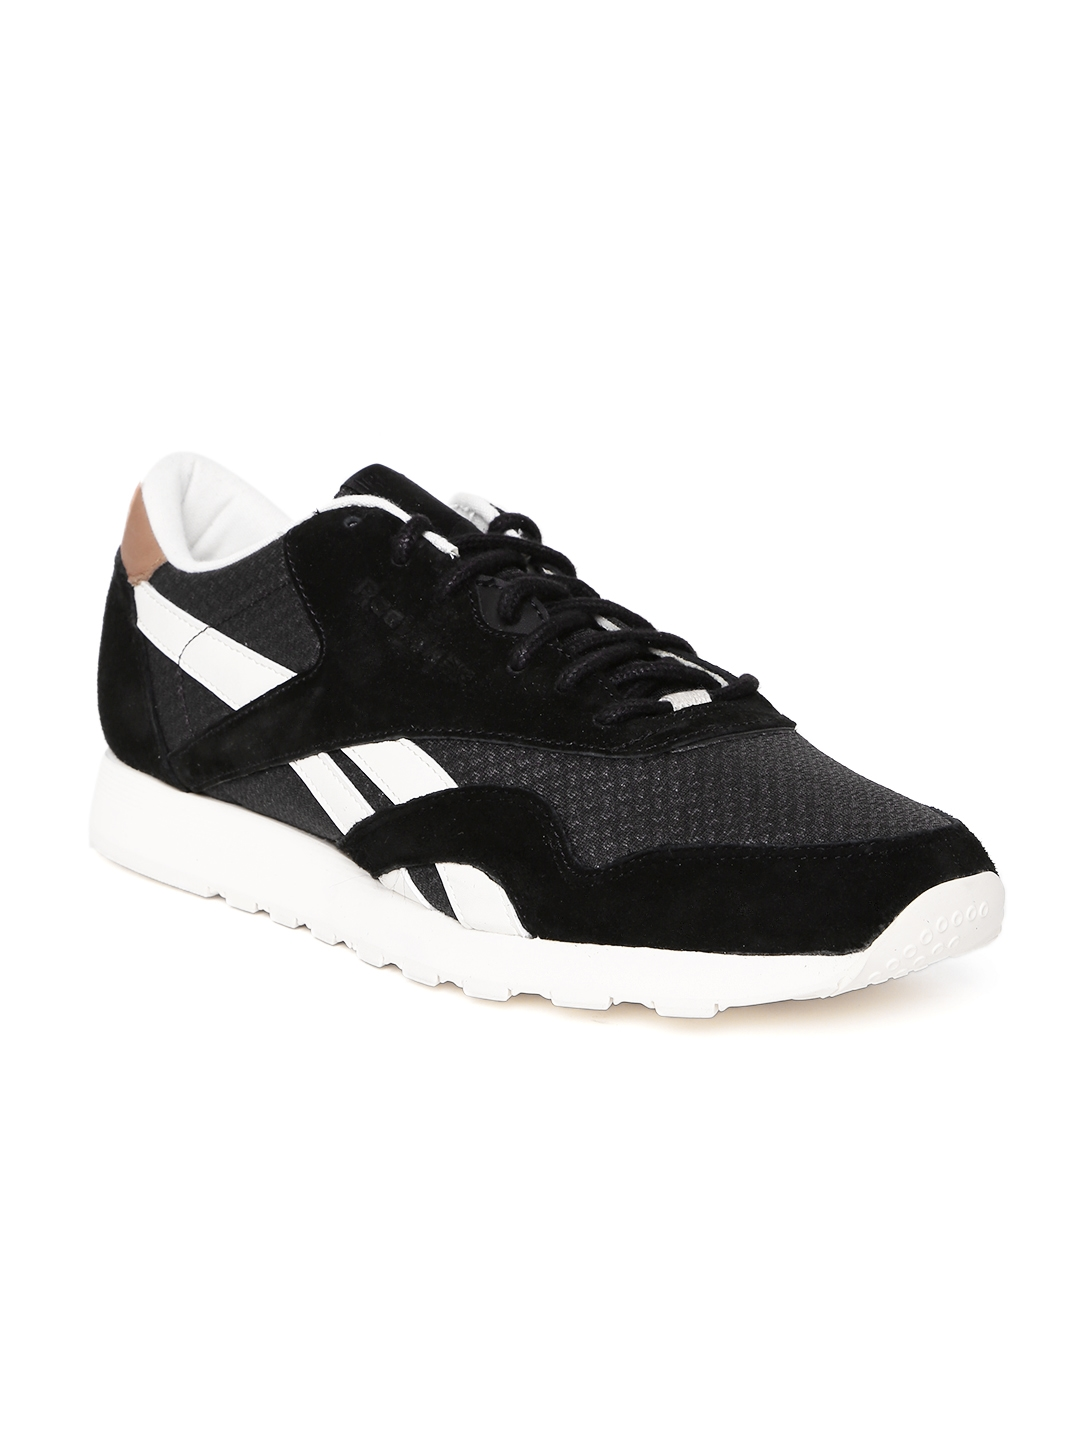 343aafd78eed6e Buy Reebok Classic Men Black CL Nylon Sneakers - Casual Shoes for ...